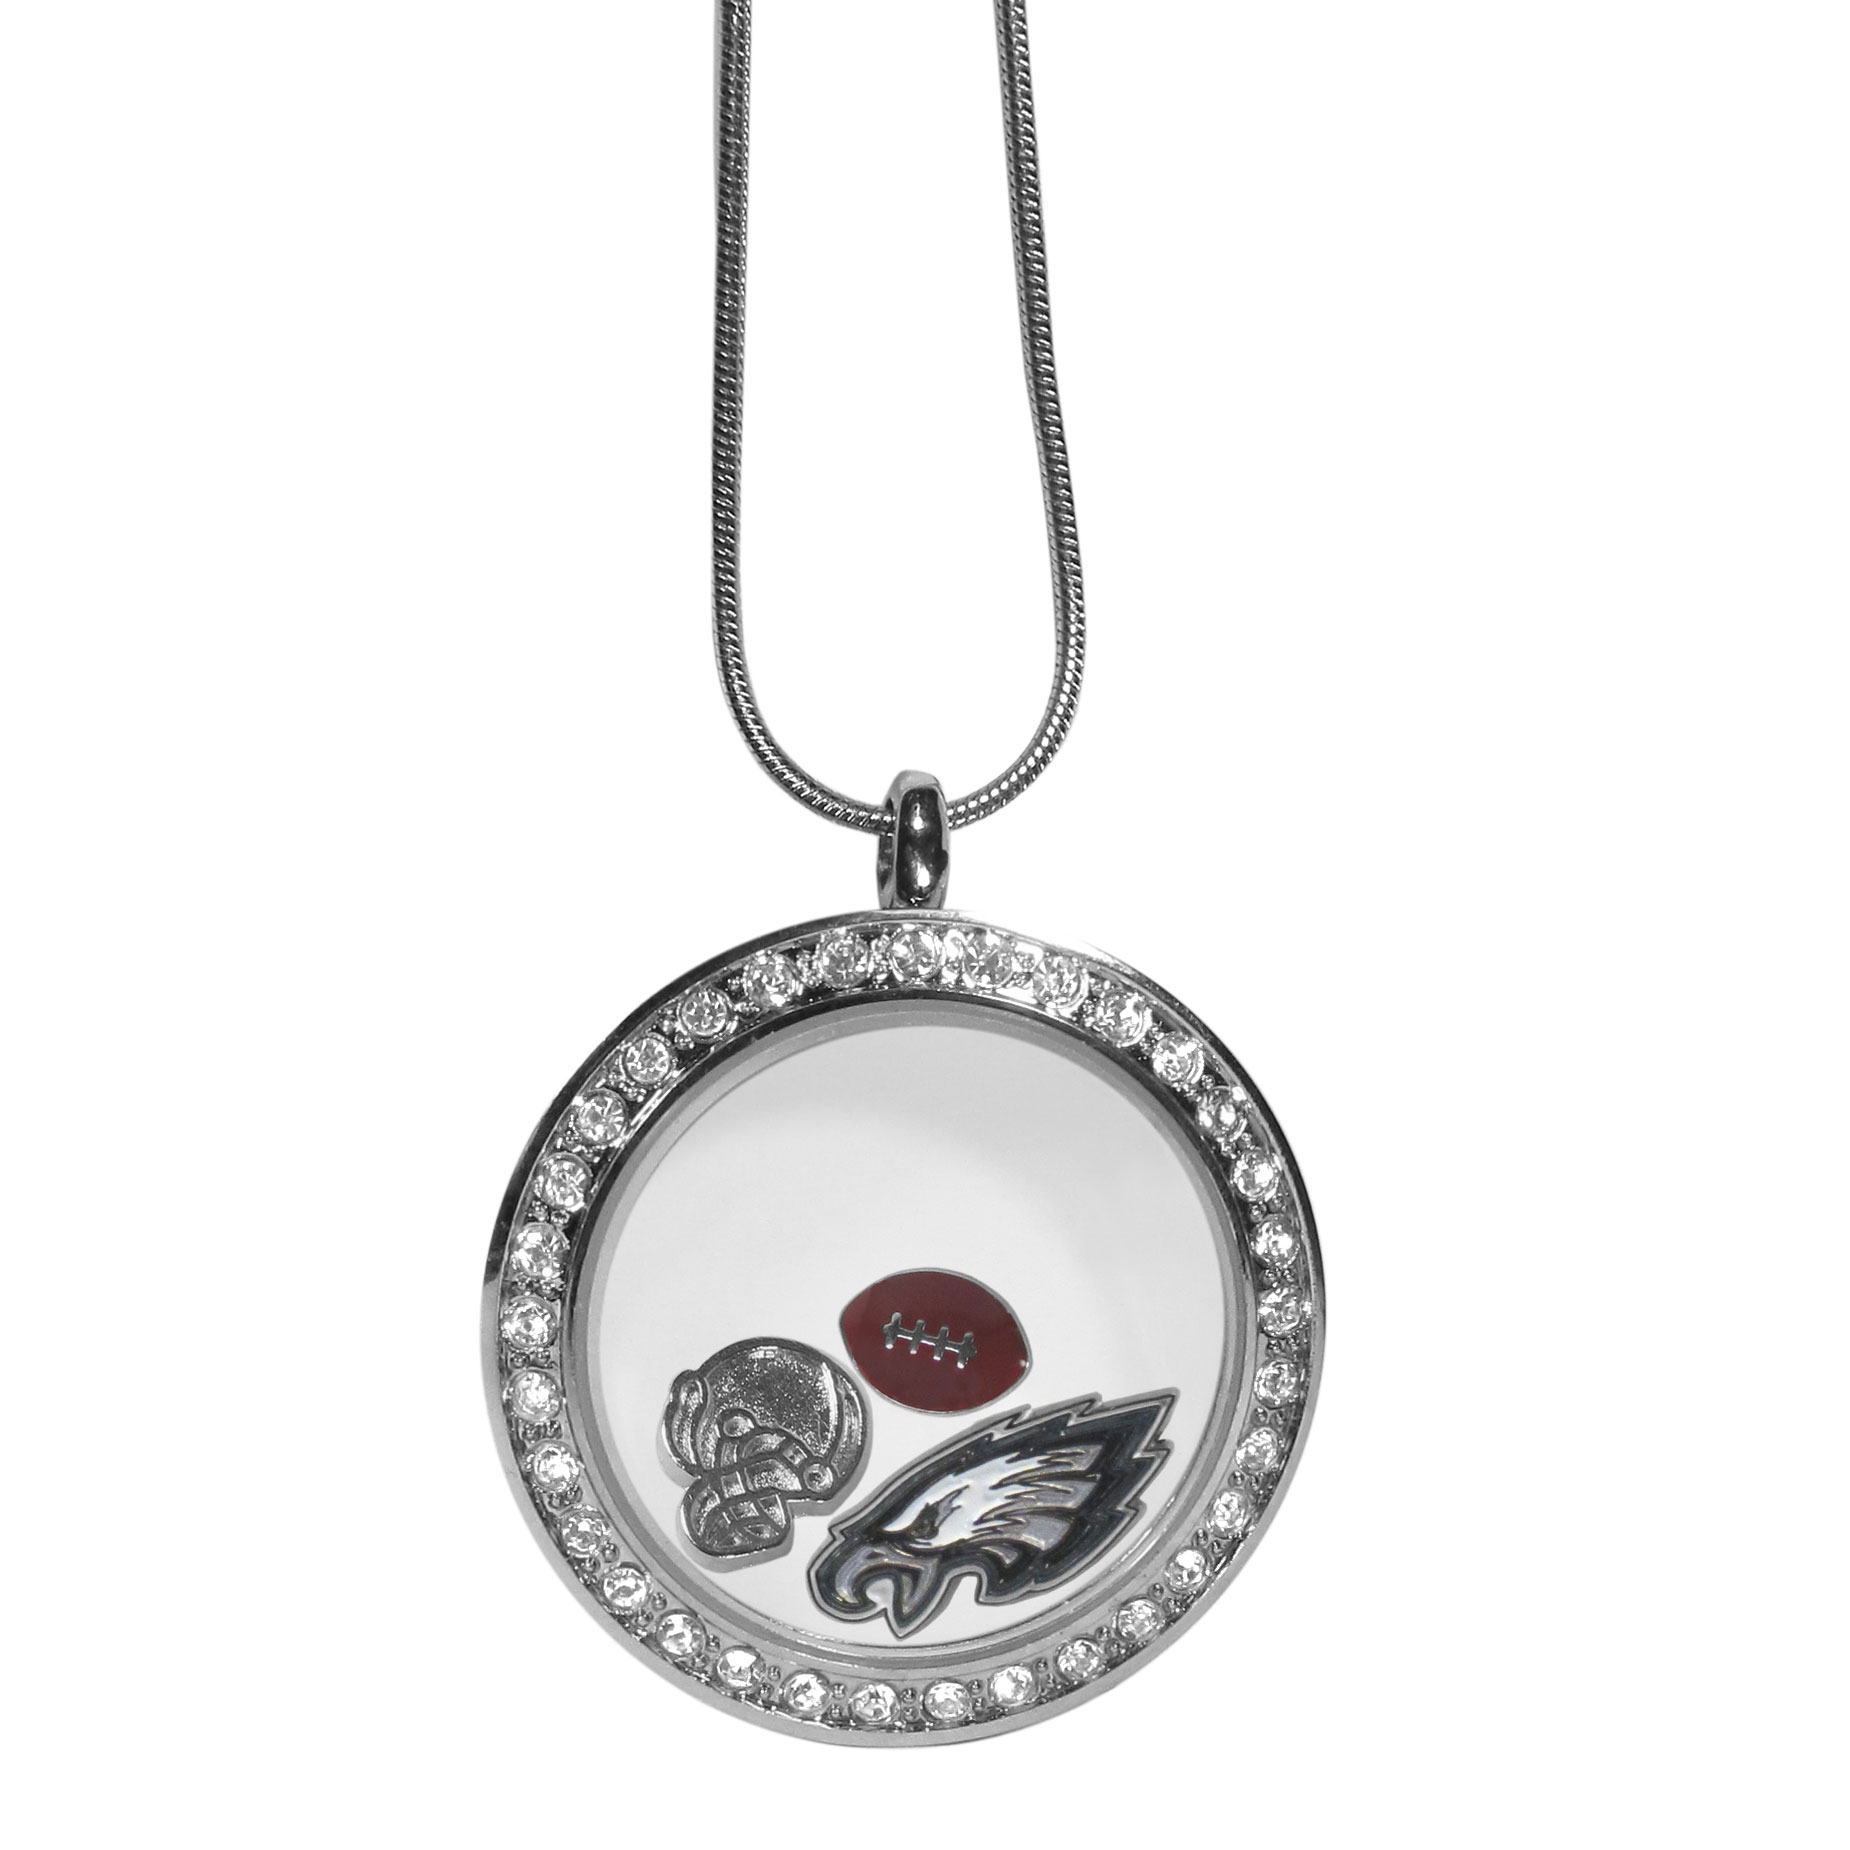 Philadelphia Eagles Locket Necklace - We have taken the classic floating charm locket and combined with licensed sports charms to create a must have fan necklace. The necklace comes with 3 charms; 1 Philadelphia Eagles charm, one football charm and one helmet charm. The charms float in a beautiful locket that has a strong magnetic closure with a rhinestone border. The locket comes on an 18 inch snake chain with 2 inch extender.